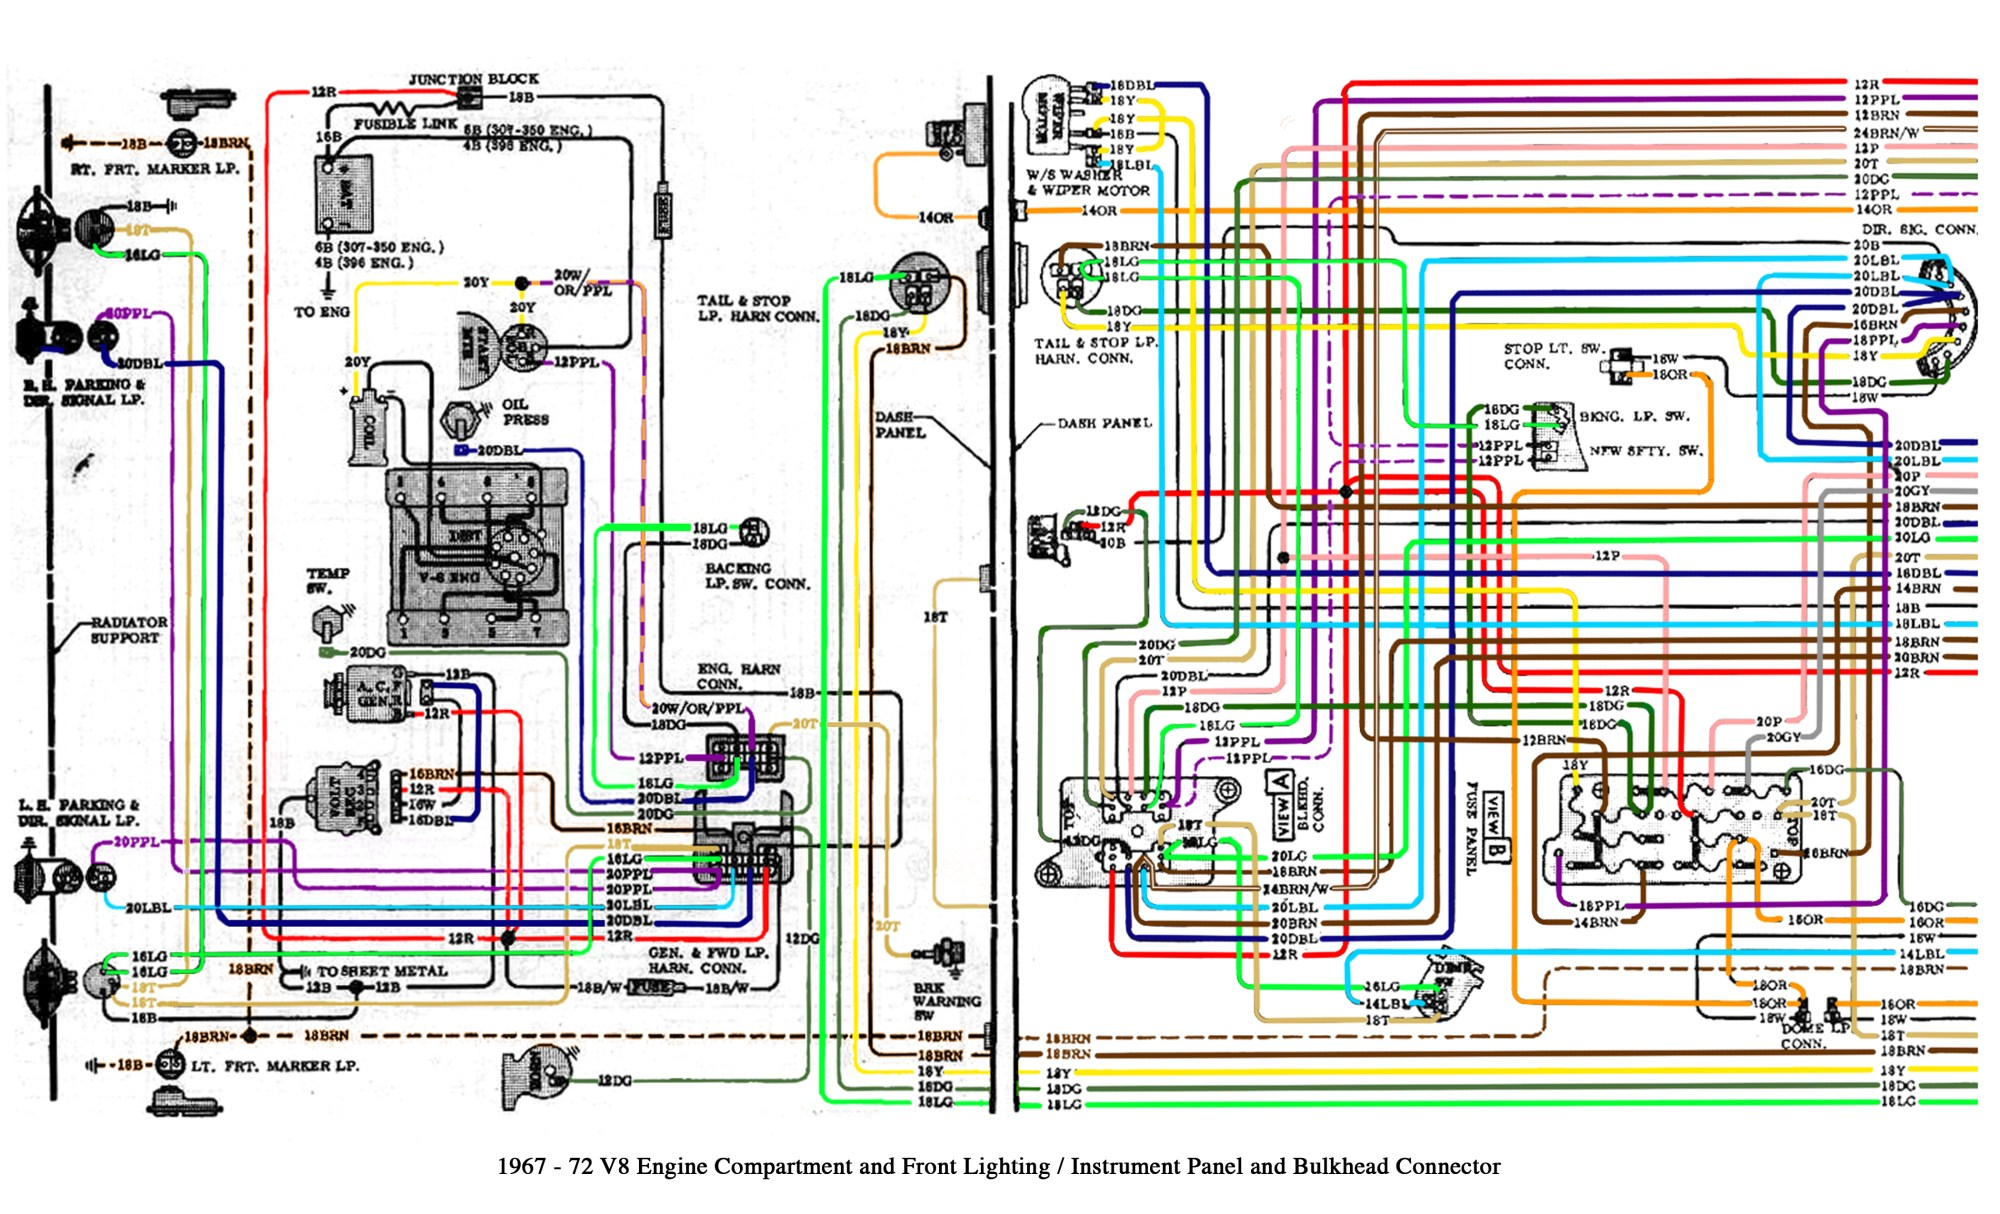 hight resolution of 72 c10 wiring diagram wiring diagram detailed 1965 chevy pickup 4x4 1972 chevy pickup fuse box